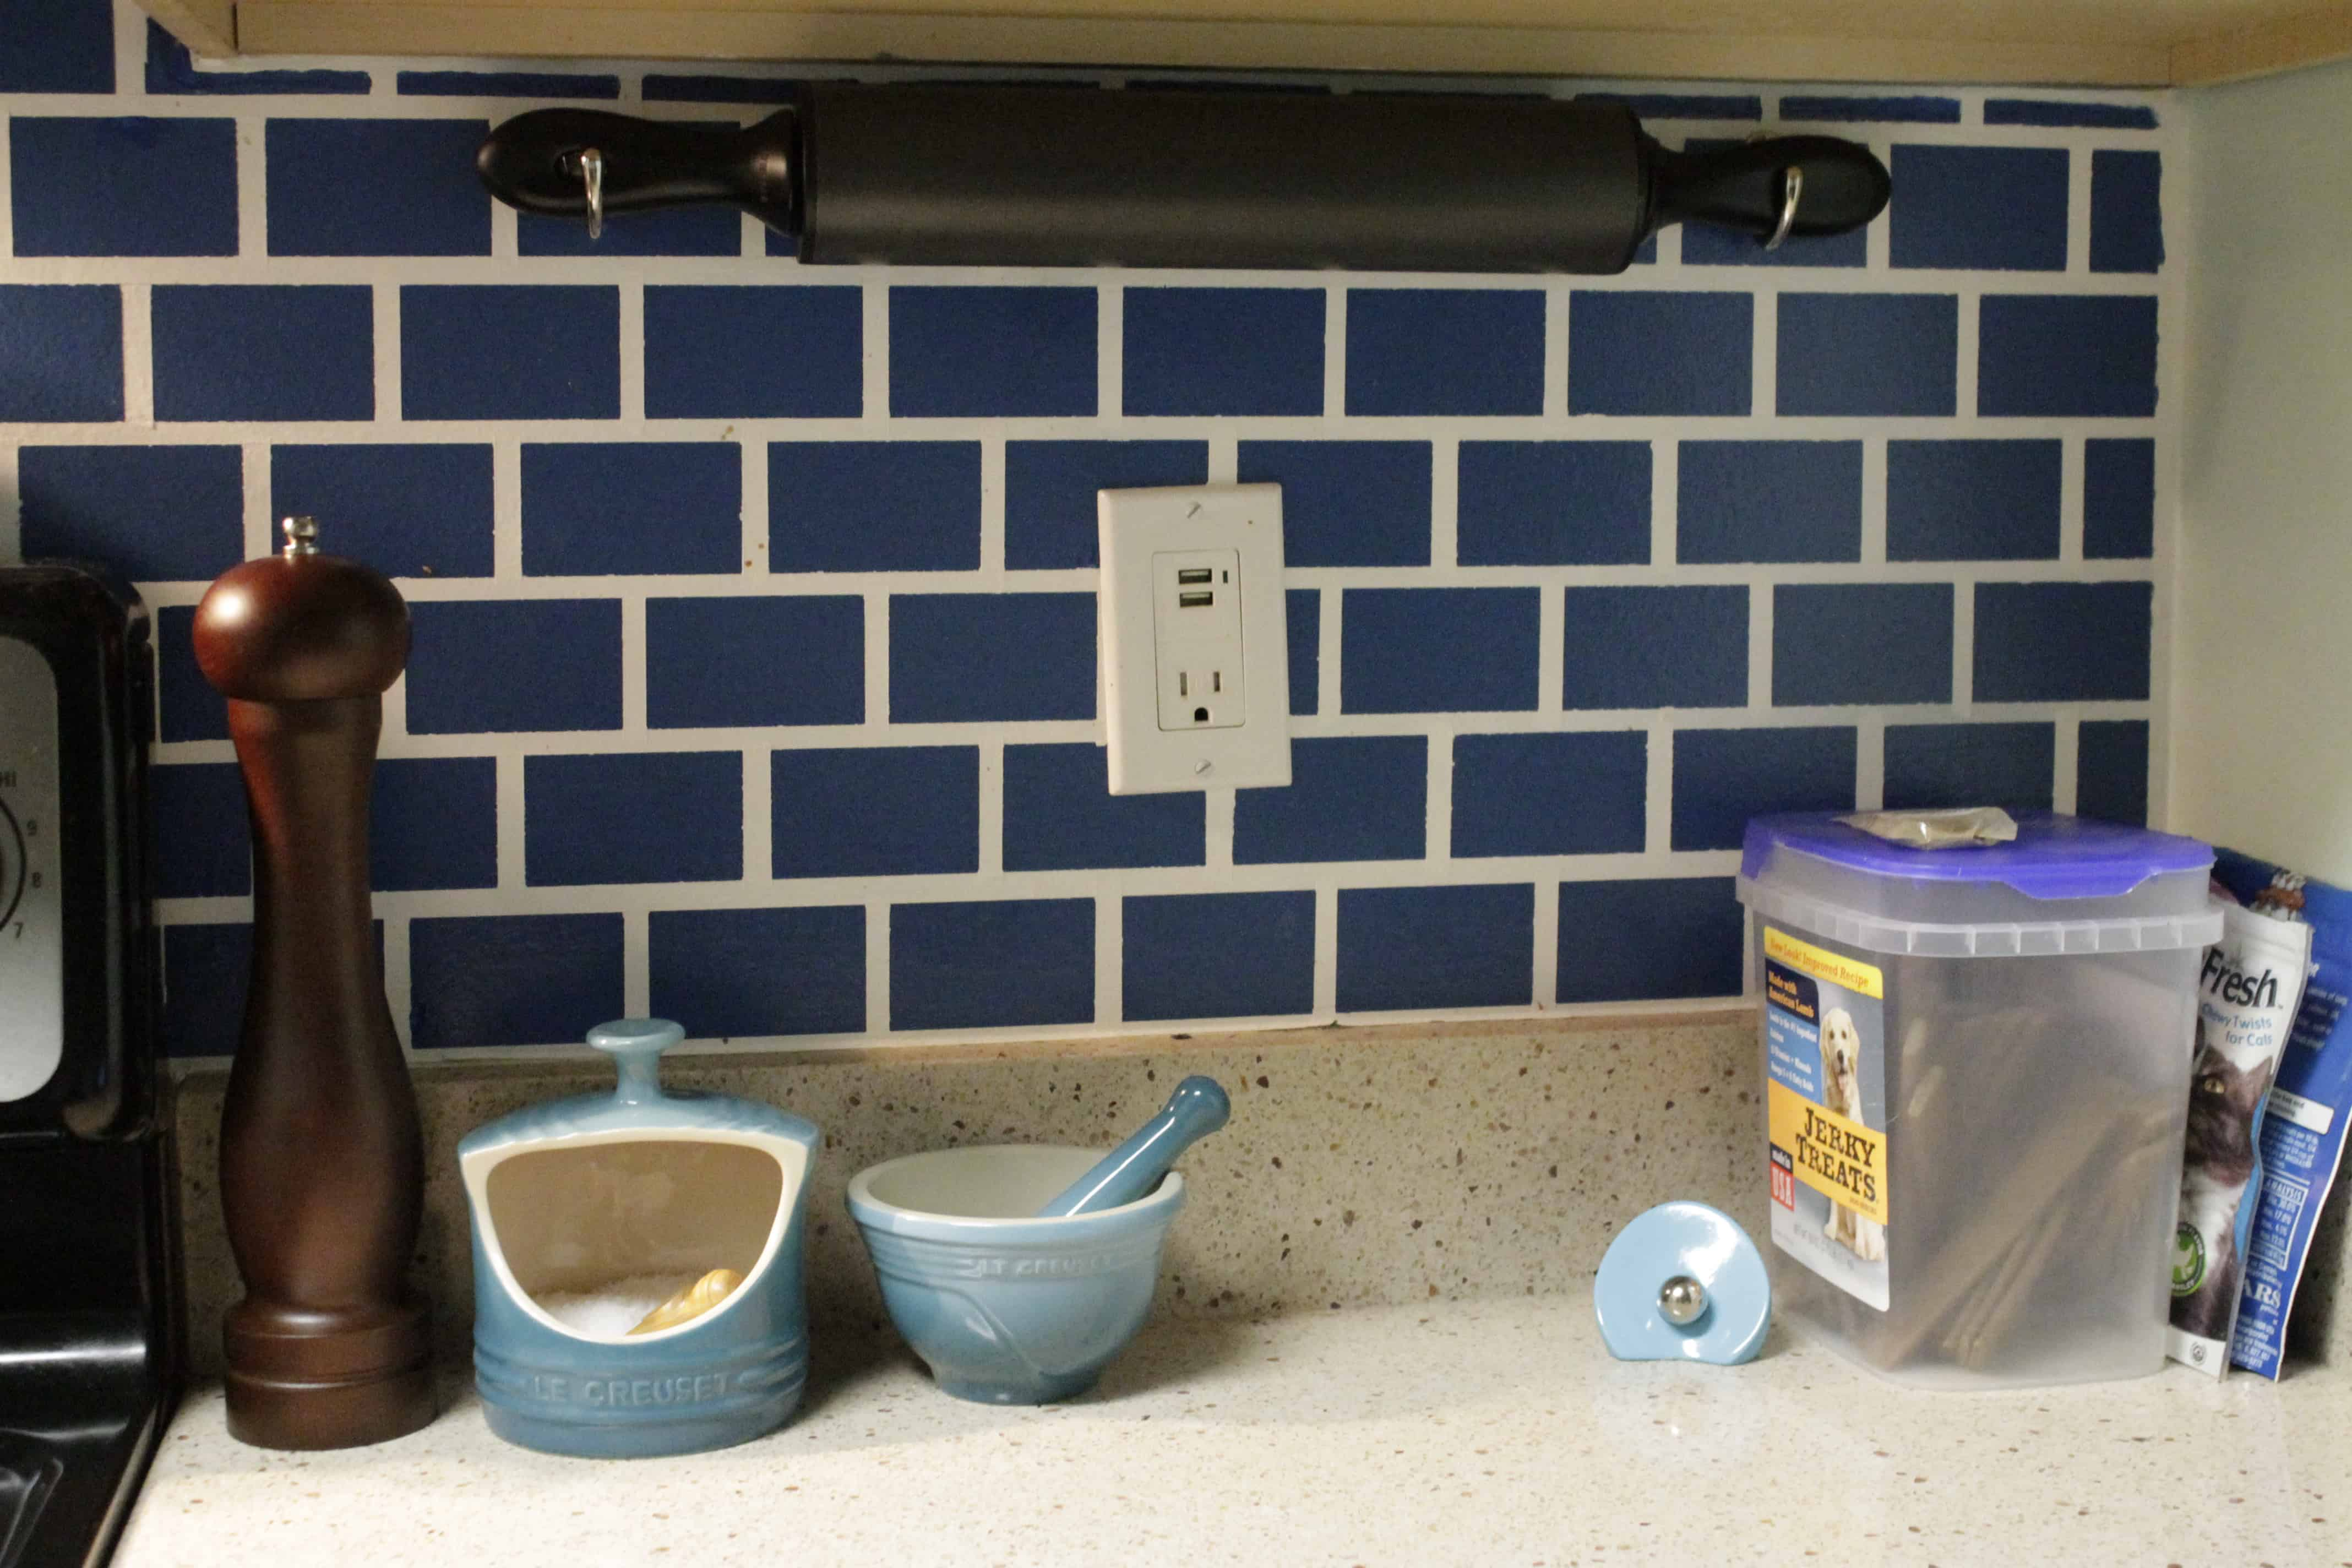 Wall Mounting a Rolling Pin